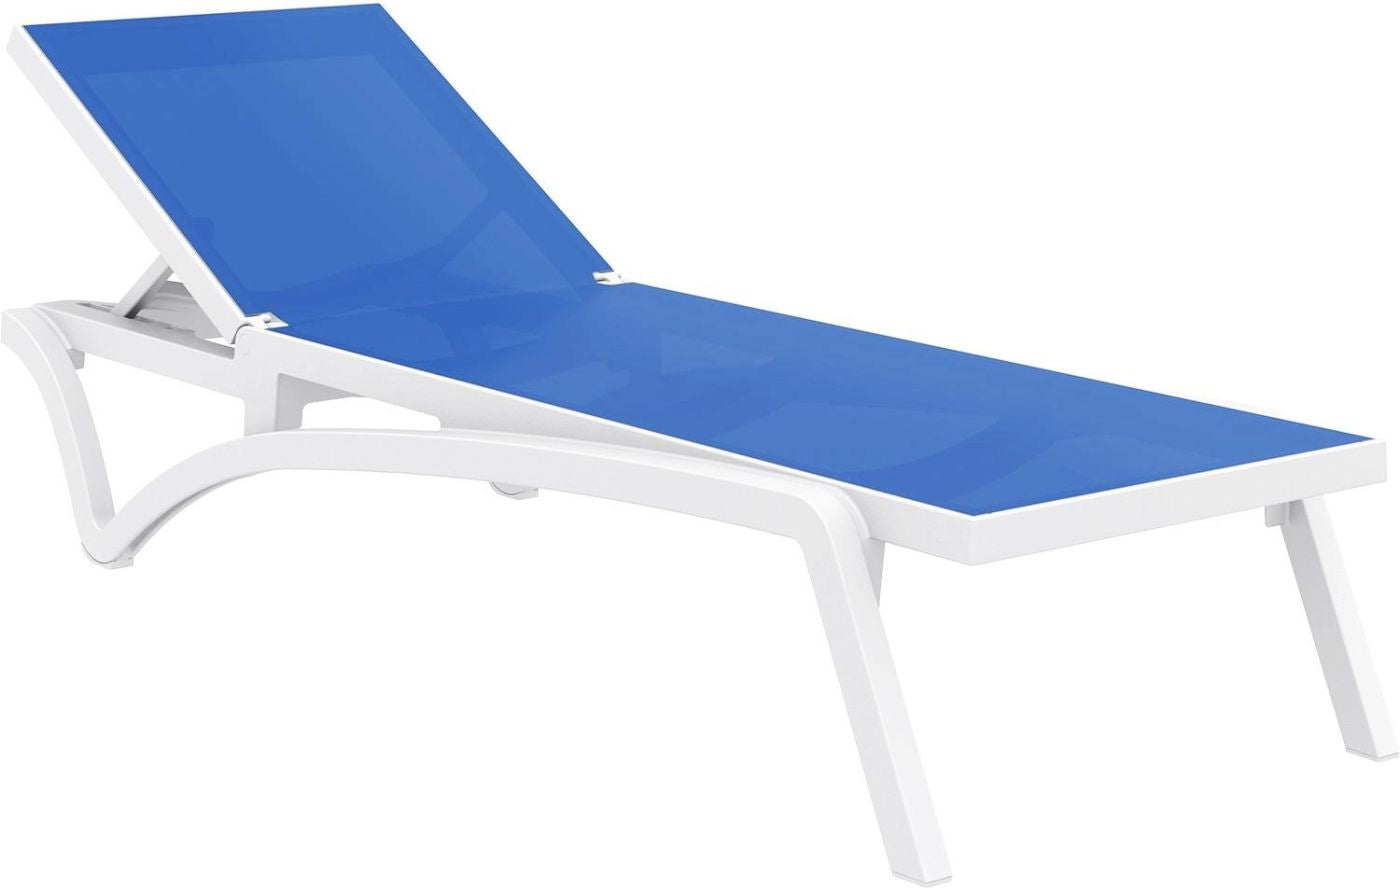 Brilliant Pacific Sling Chaise Lounge White Frame Blue Sling Set Of 2 Dailytribune Chair Design For Home Dailytribuneorg